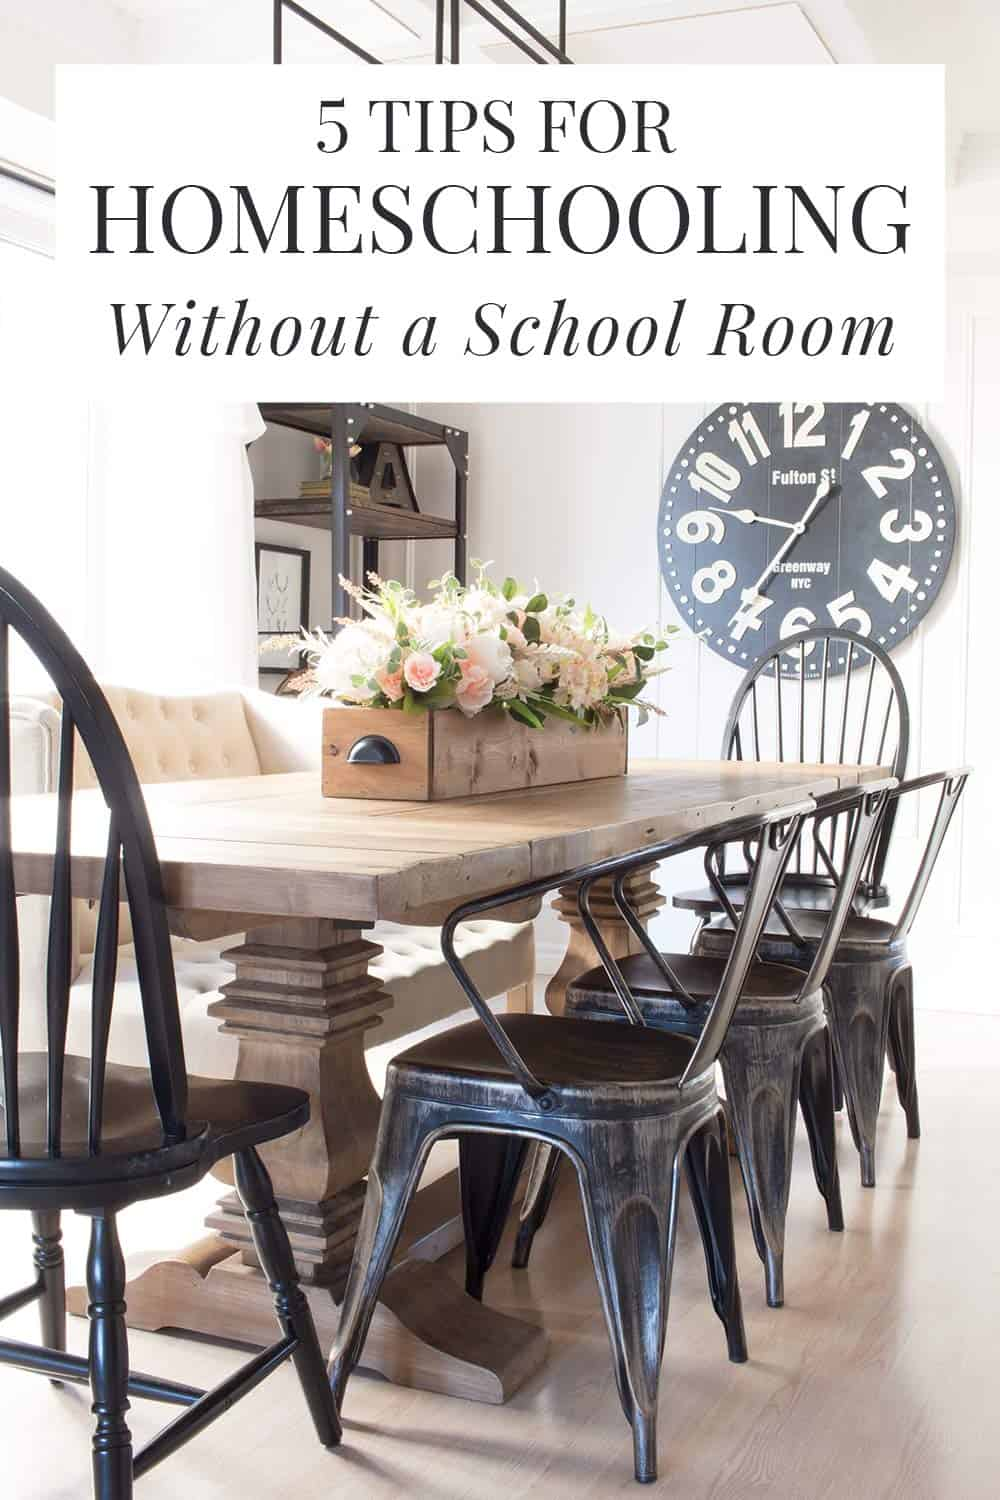 dining room school room - homeschooling without a school room text overlay